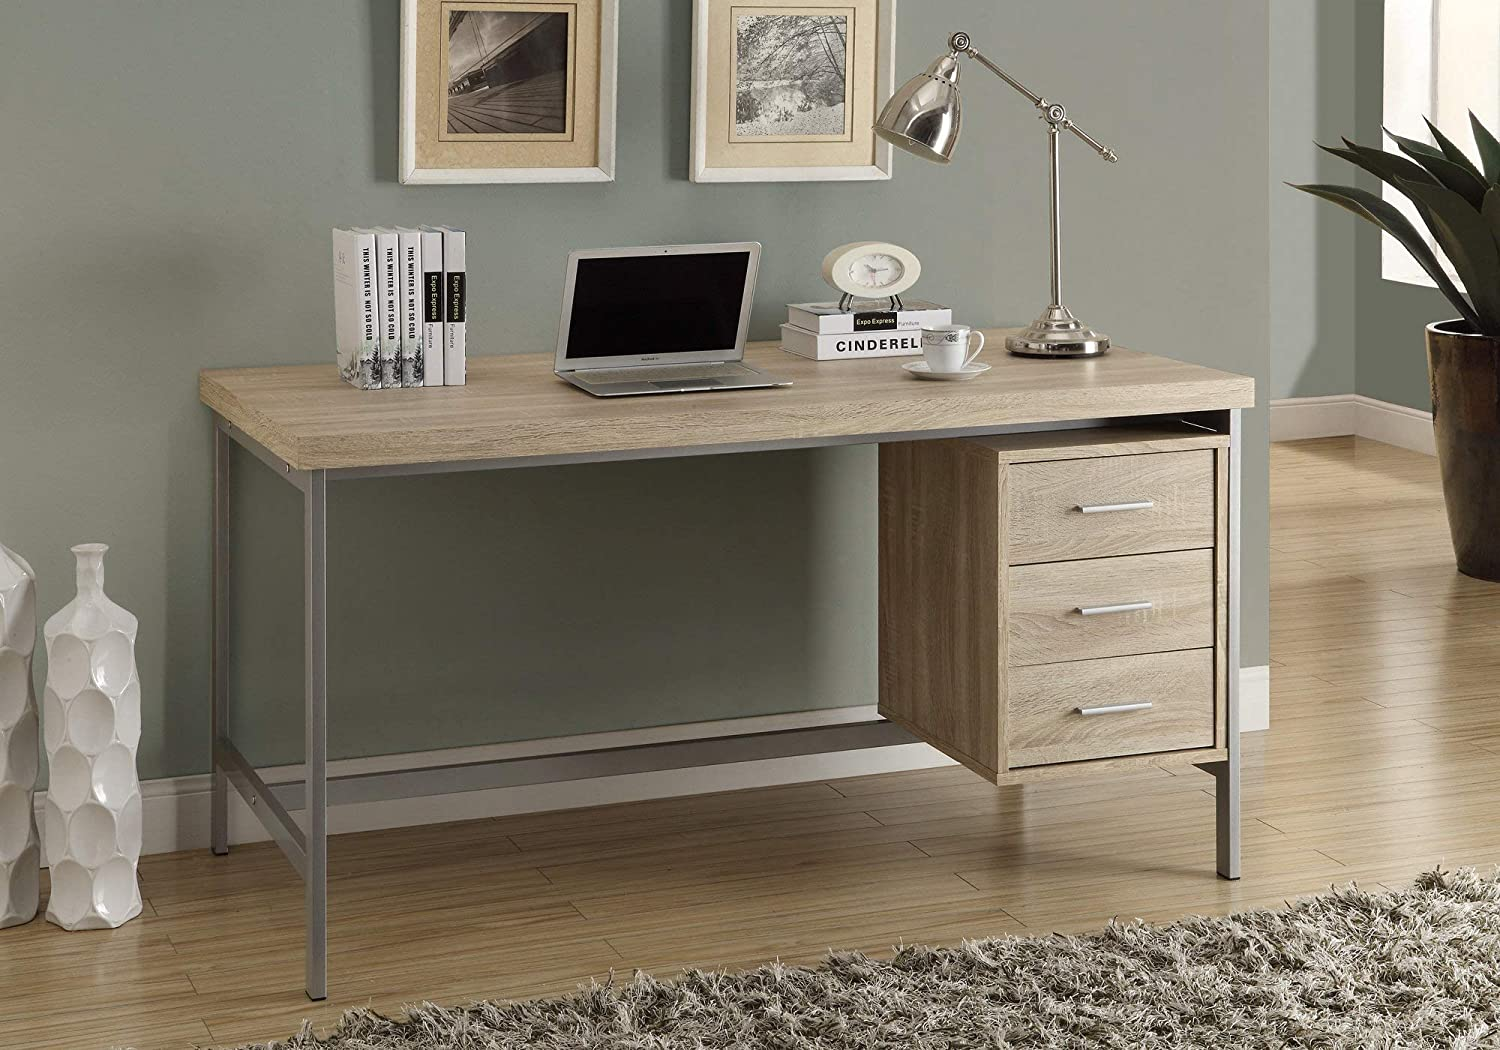 "Monarch Specialties I 7245 Home & Office Computer Desk with Drawers-Metal Frame, 60"" L, Natural"